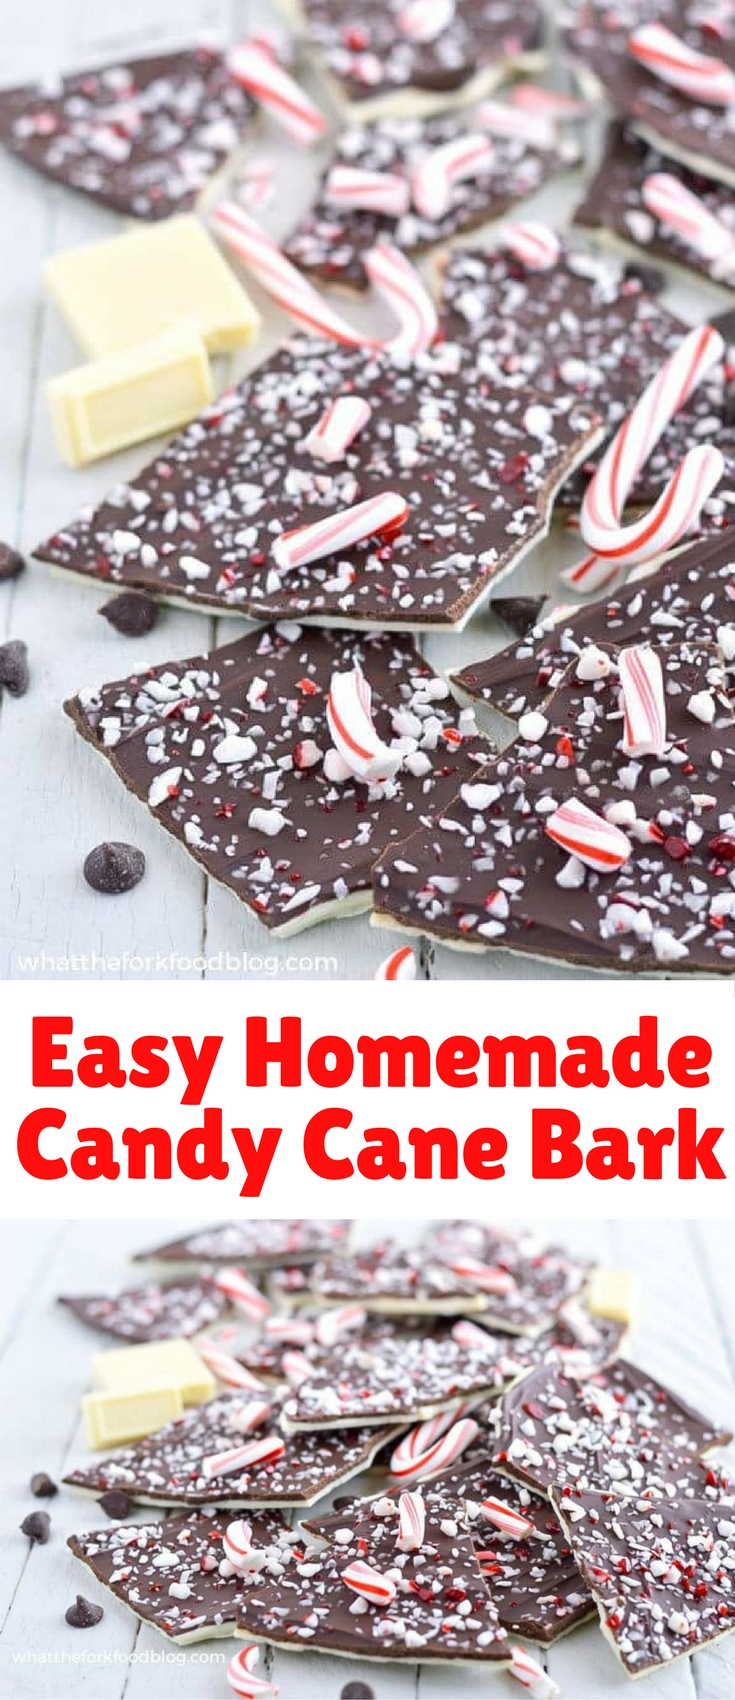 This homemade candy cane bark makes an easy last minute gift, hostess gift, or dessert. Just a few ingredients plus 10 minutes and it's done! So simple!